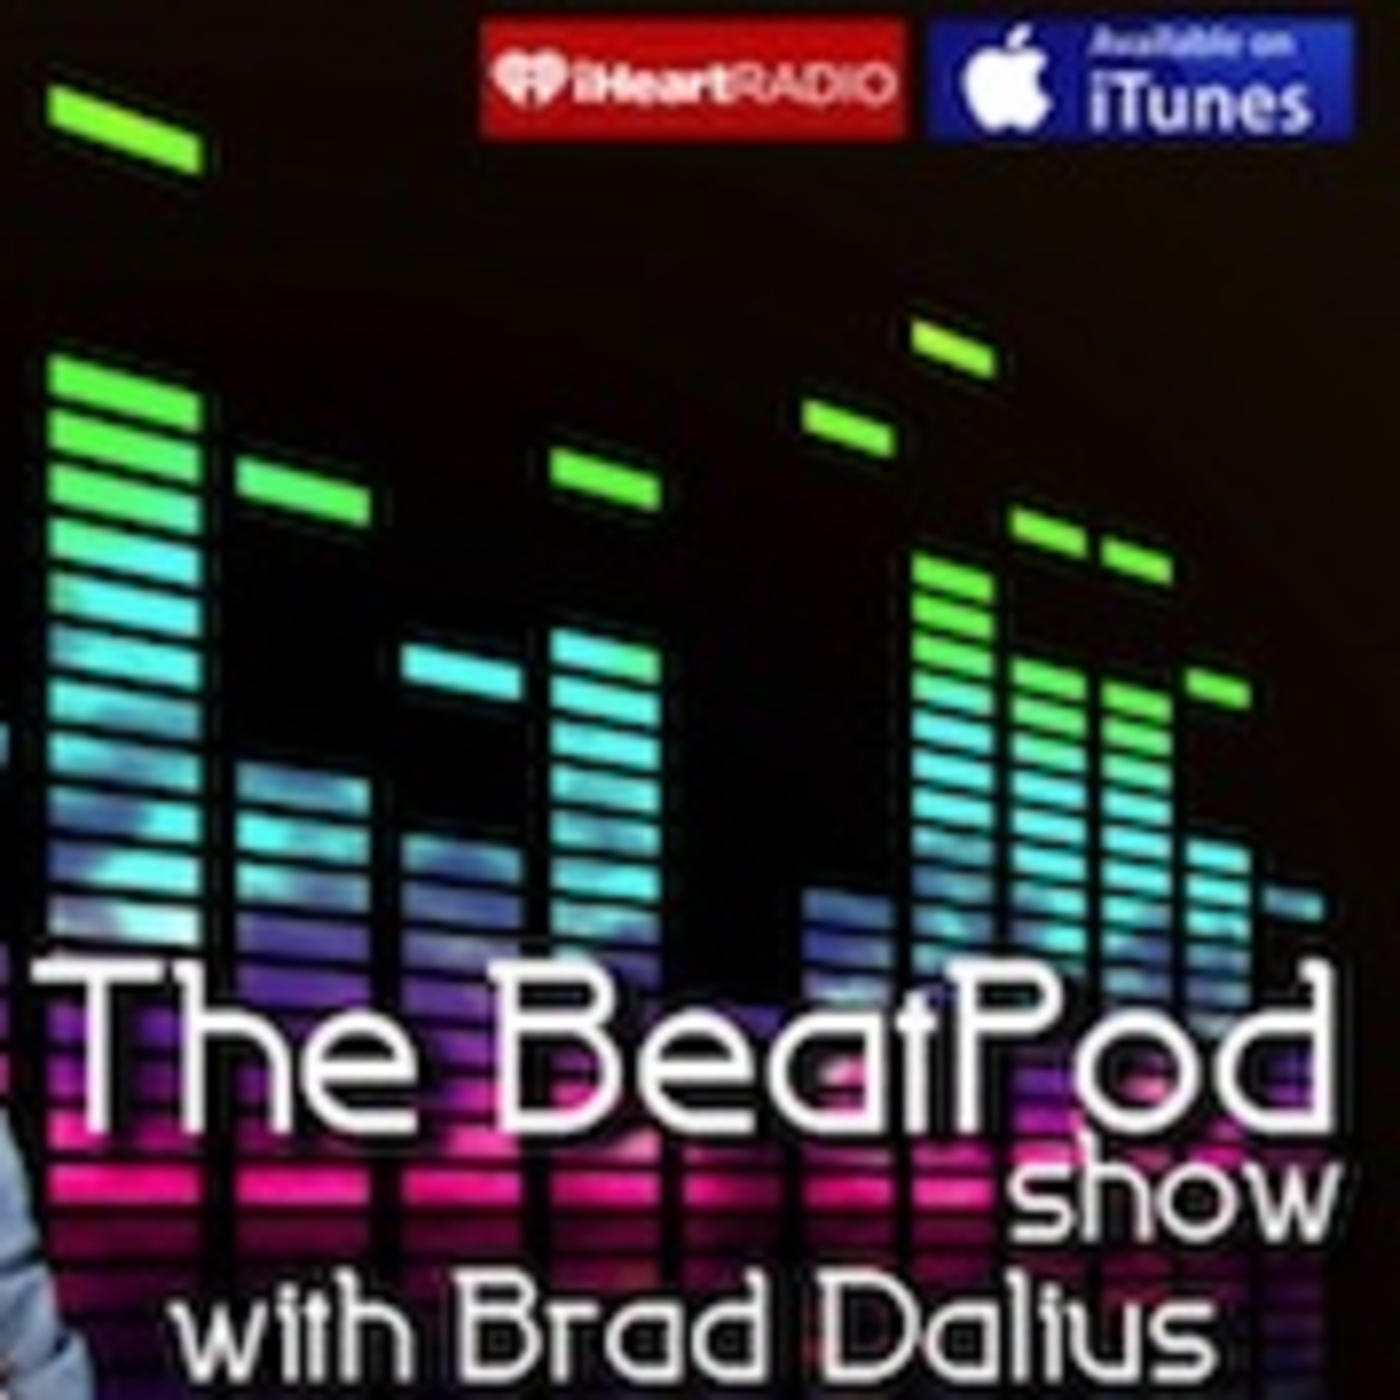 The Beat Pod Show with Brad Dalius